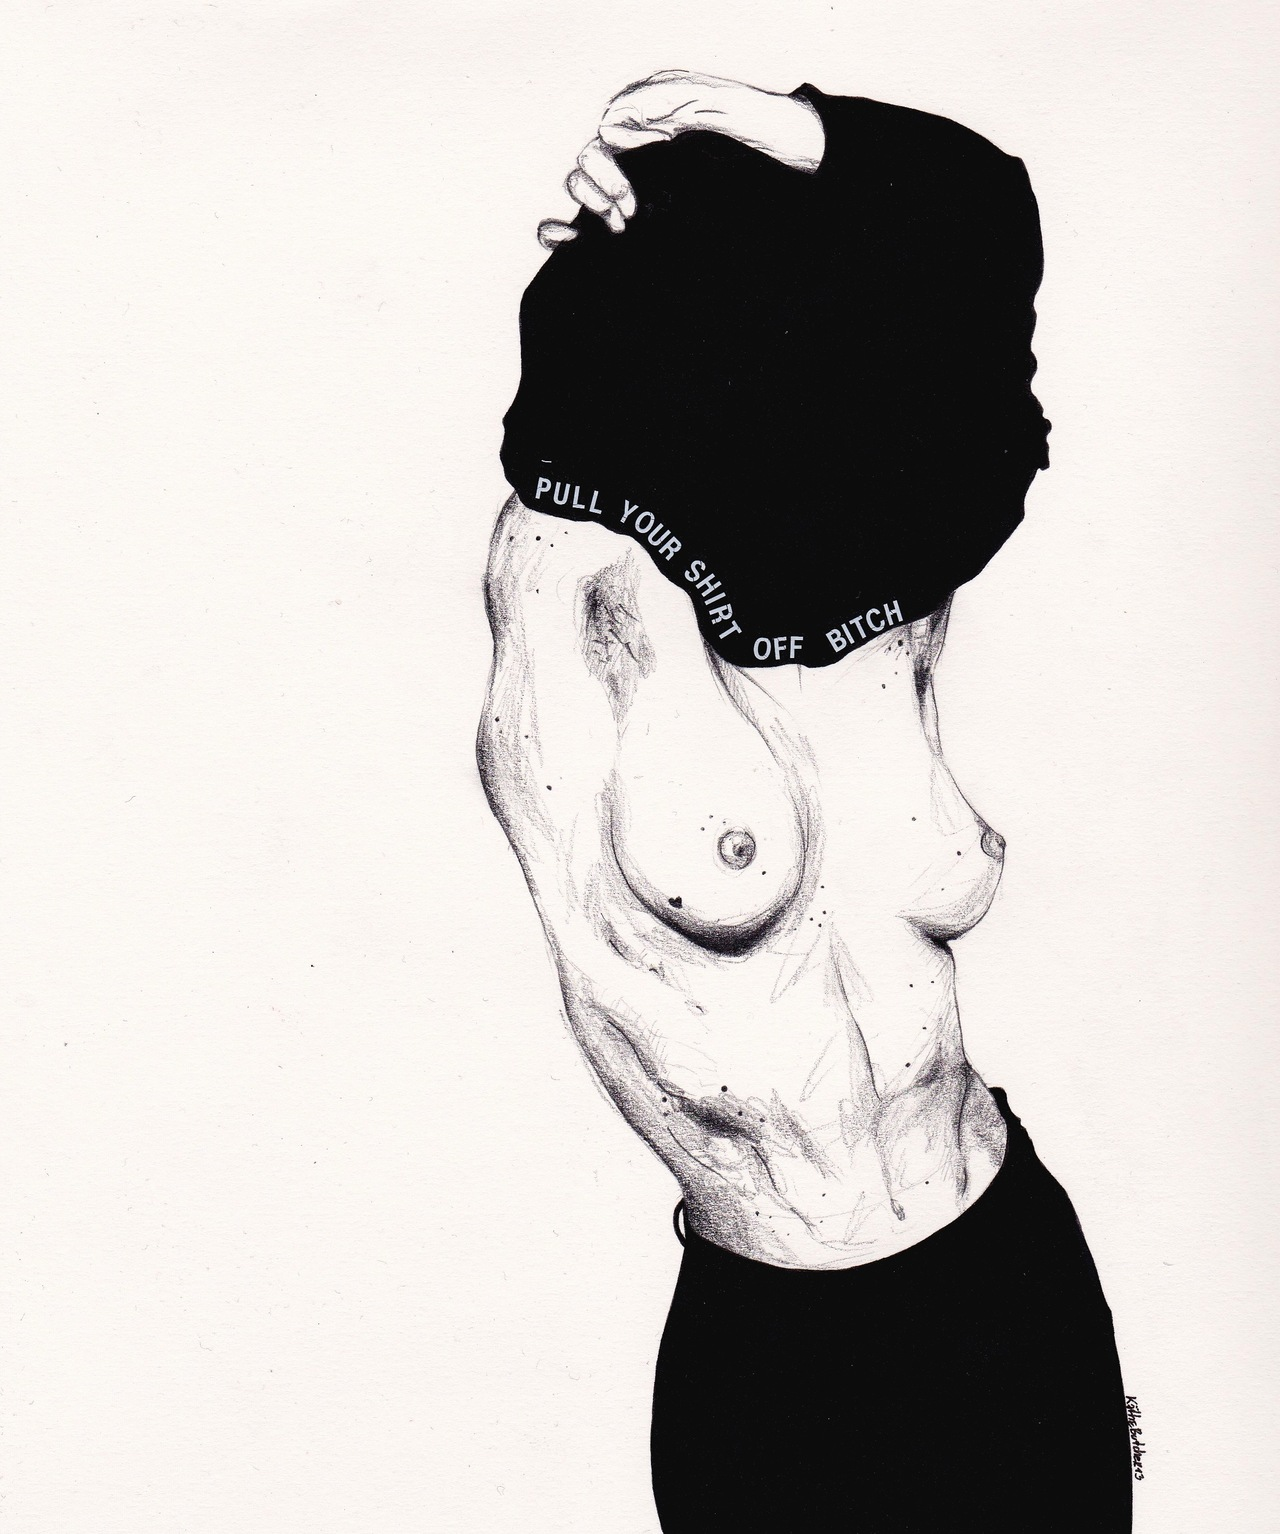 Black and White drawings from Kaethe Butcher: tumblr_mv6axfPz9k1sj1vz2o1_1280.jpg